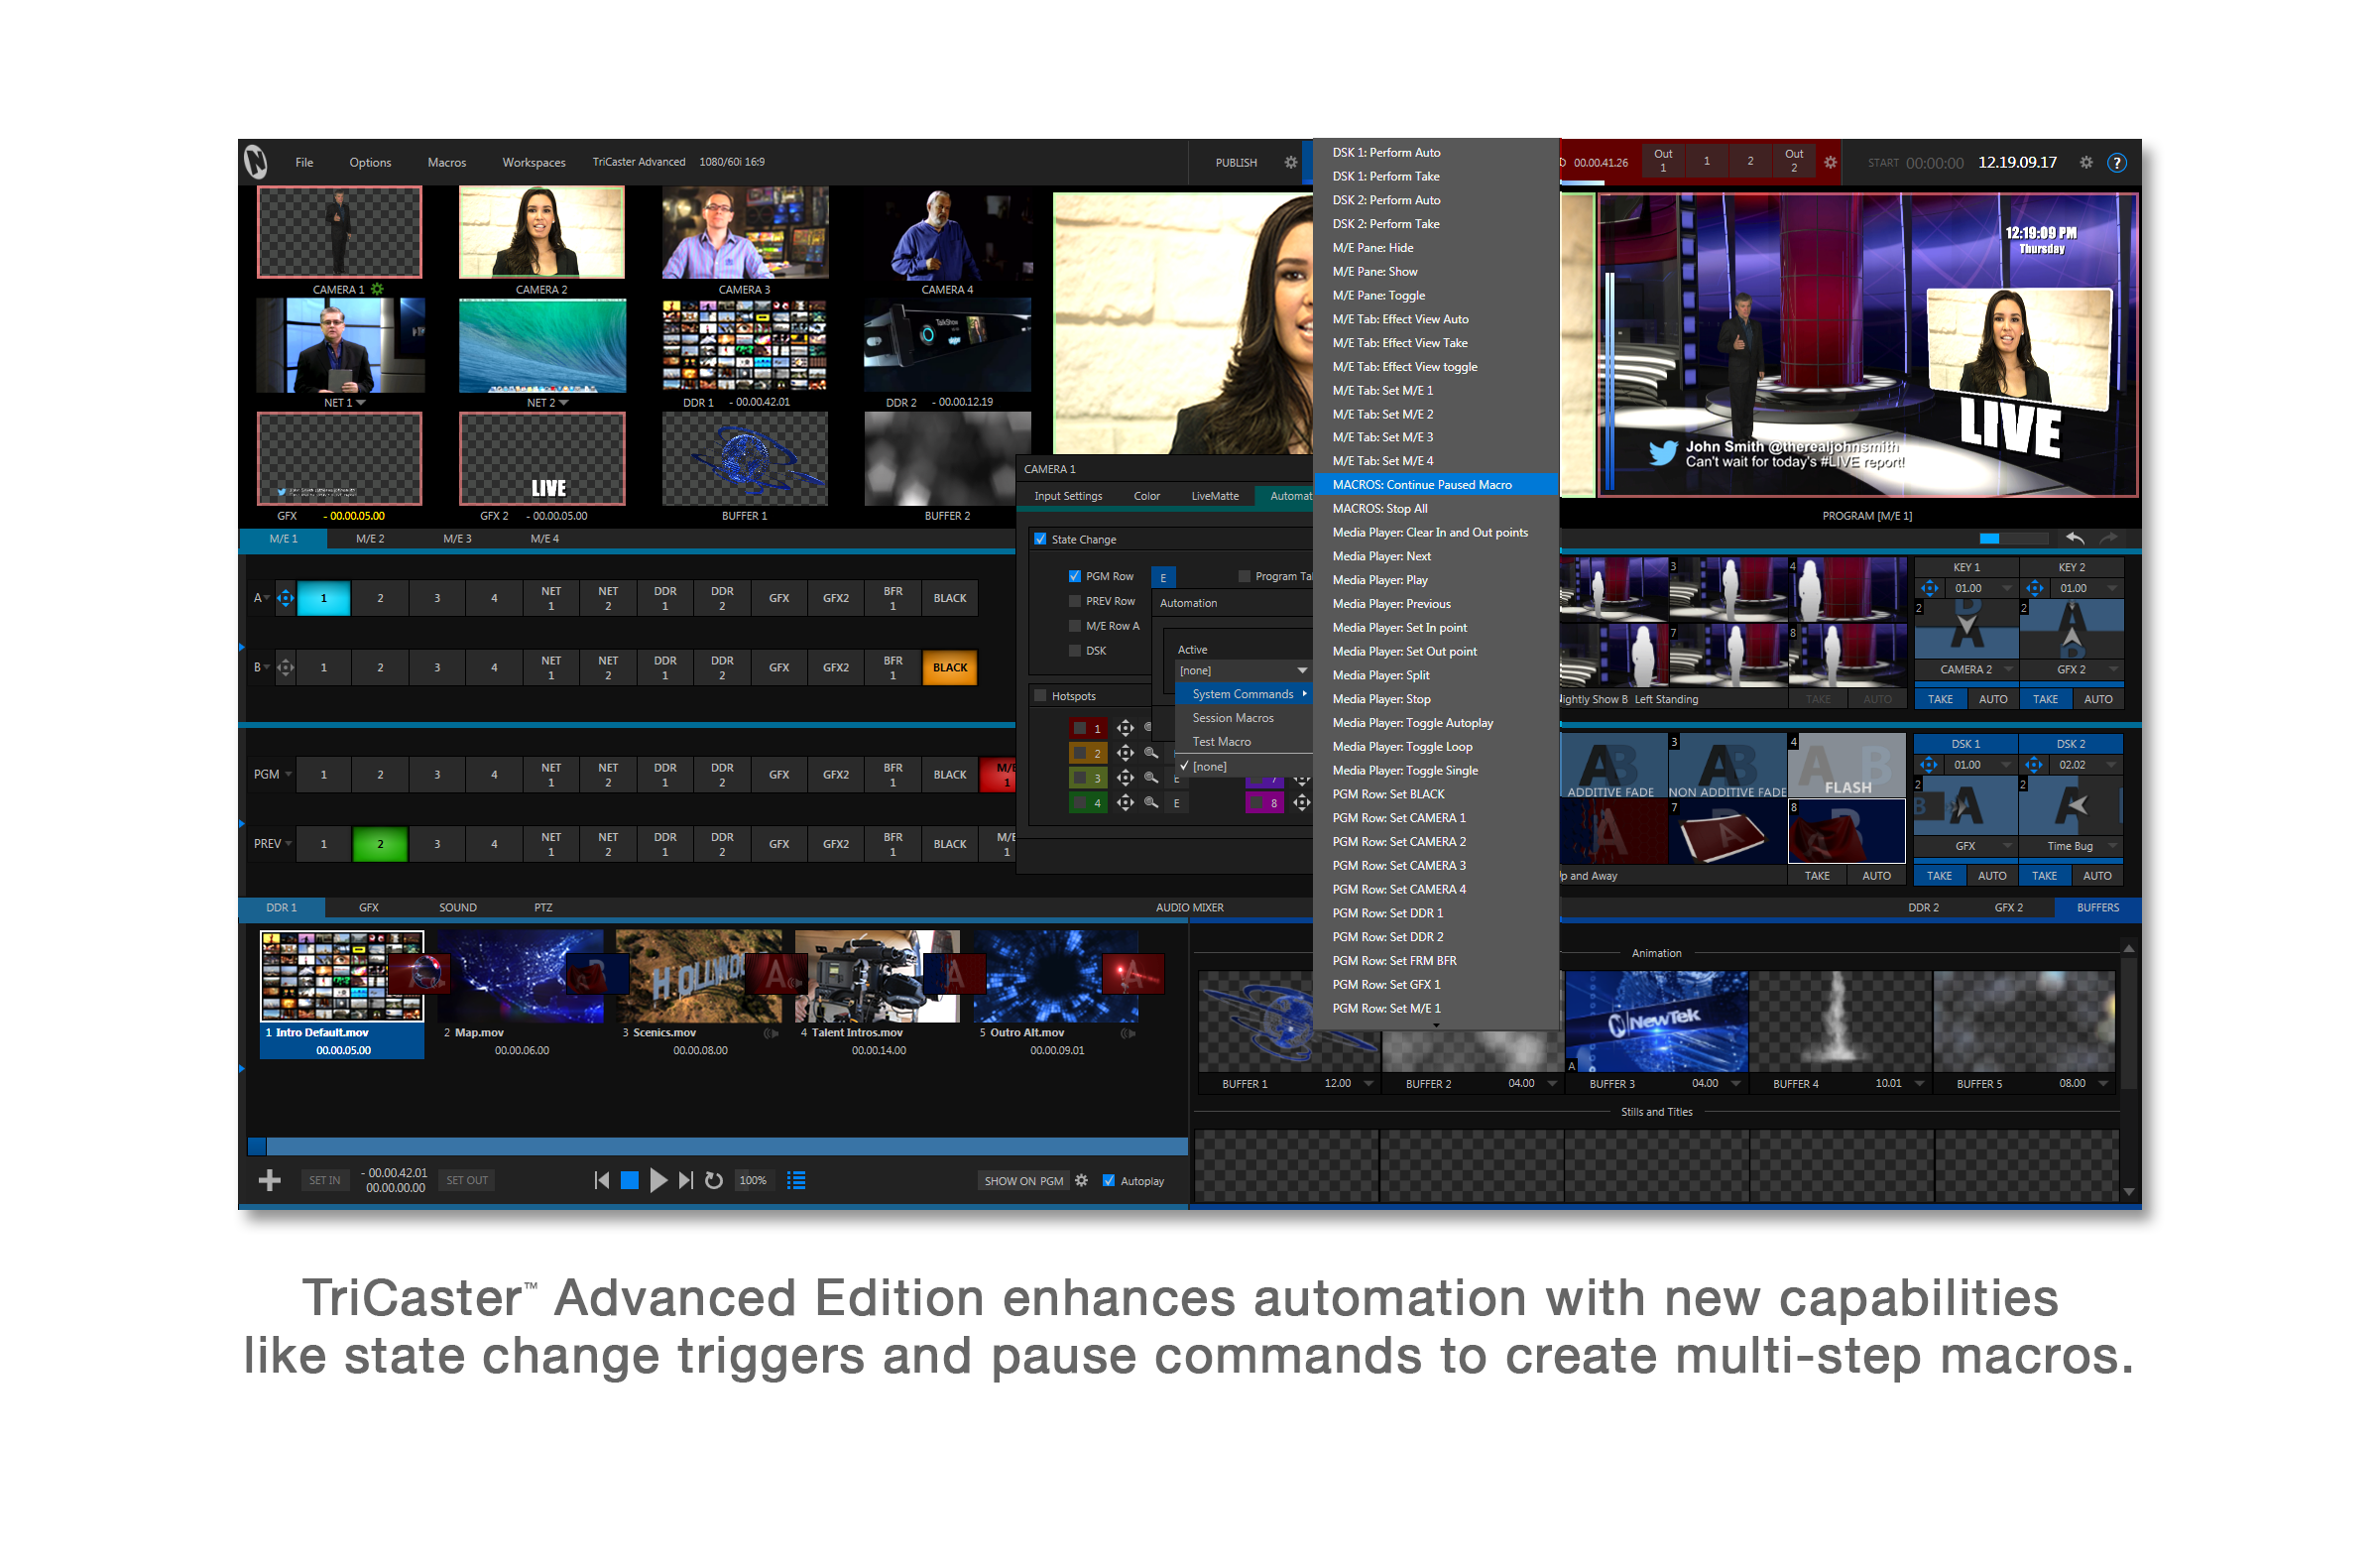 TriCaster Mini user interface with TriCaster Advanced Edition software - Input Automation tab and se